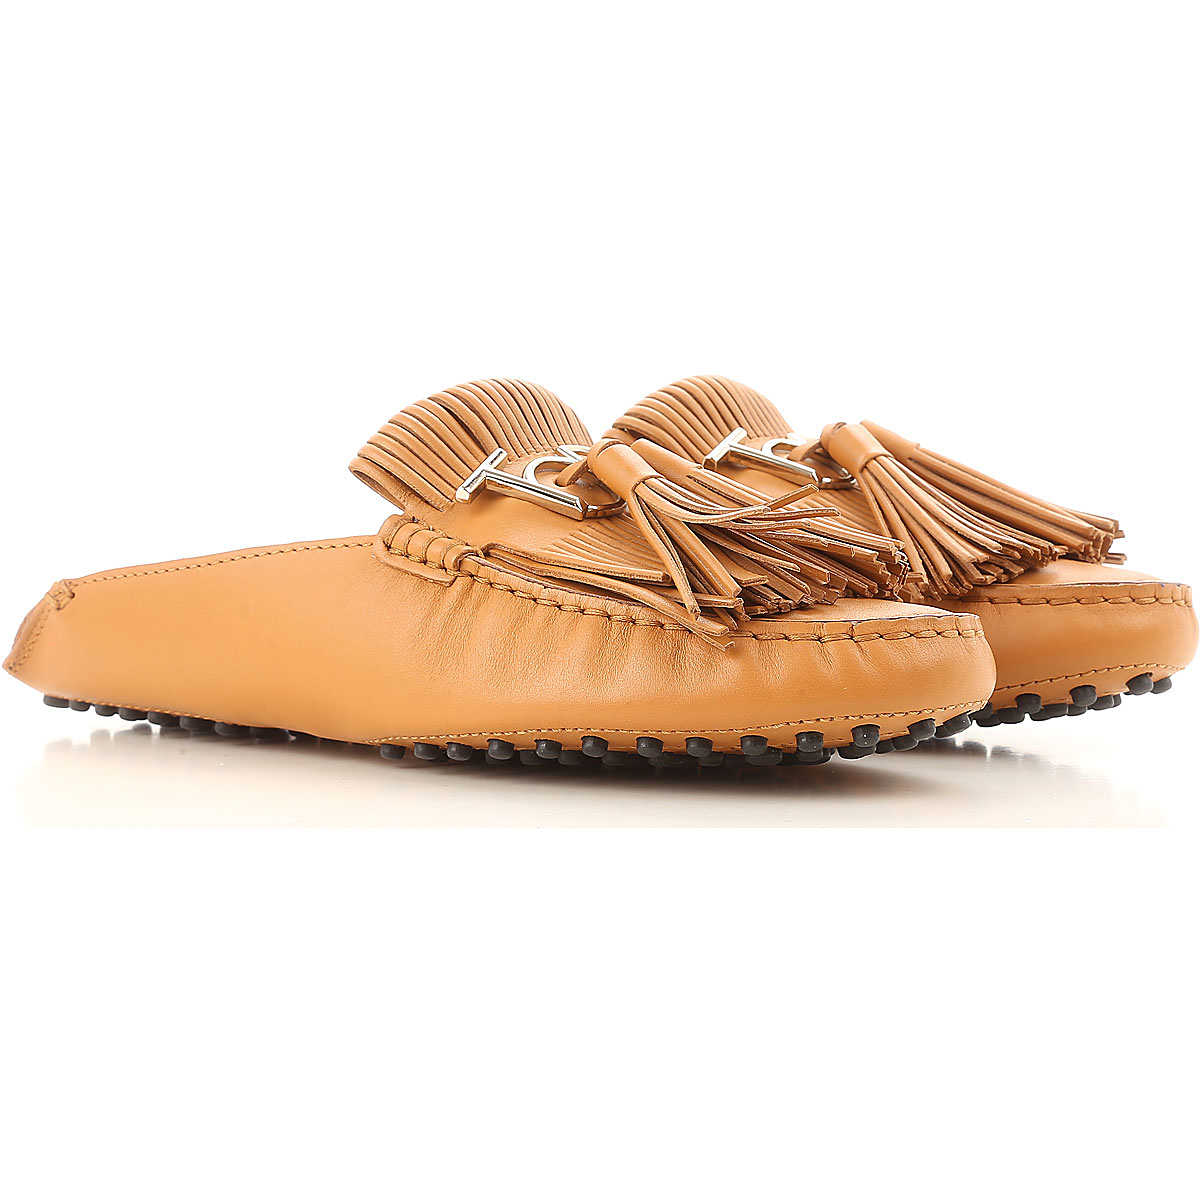 Tods Loafers for Women On Sale Camel UK - GOOFASH